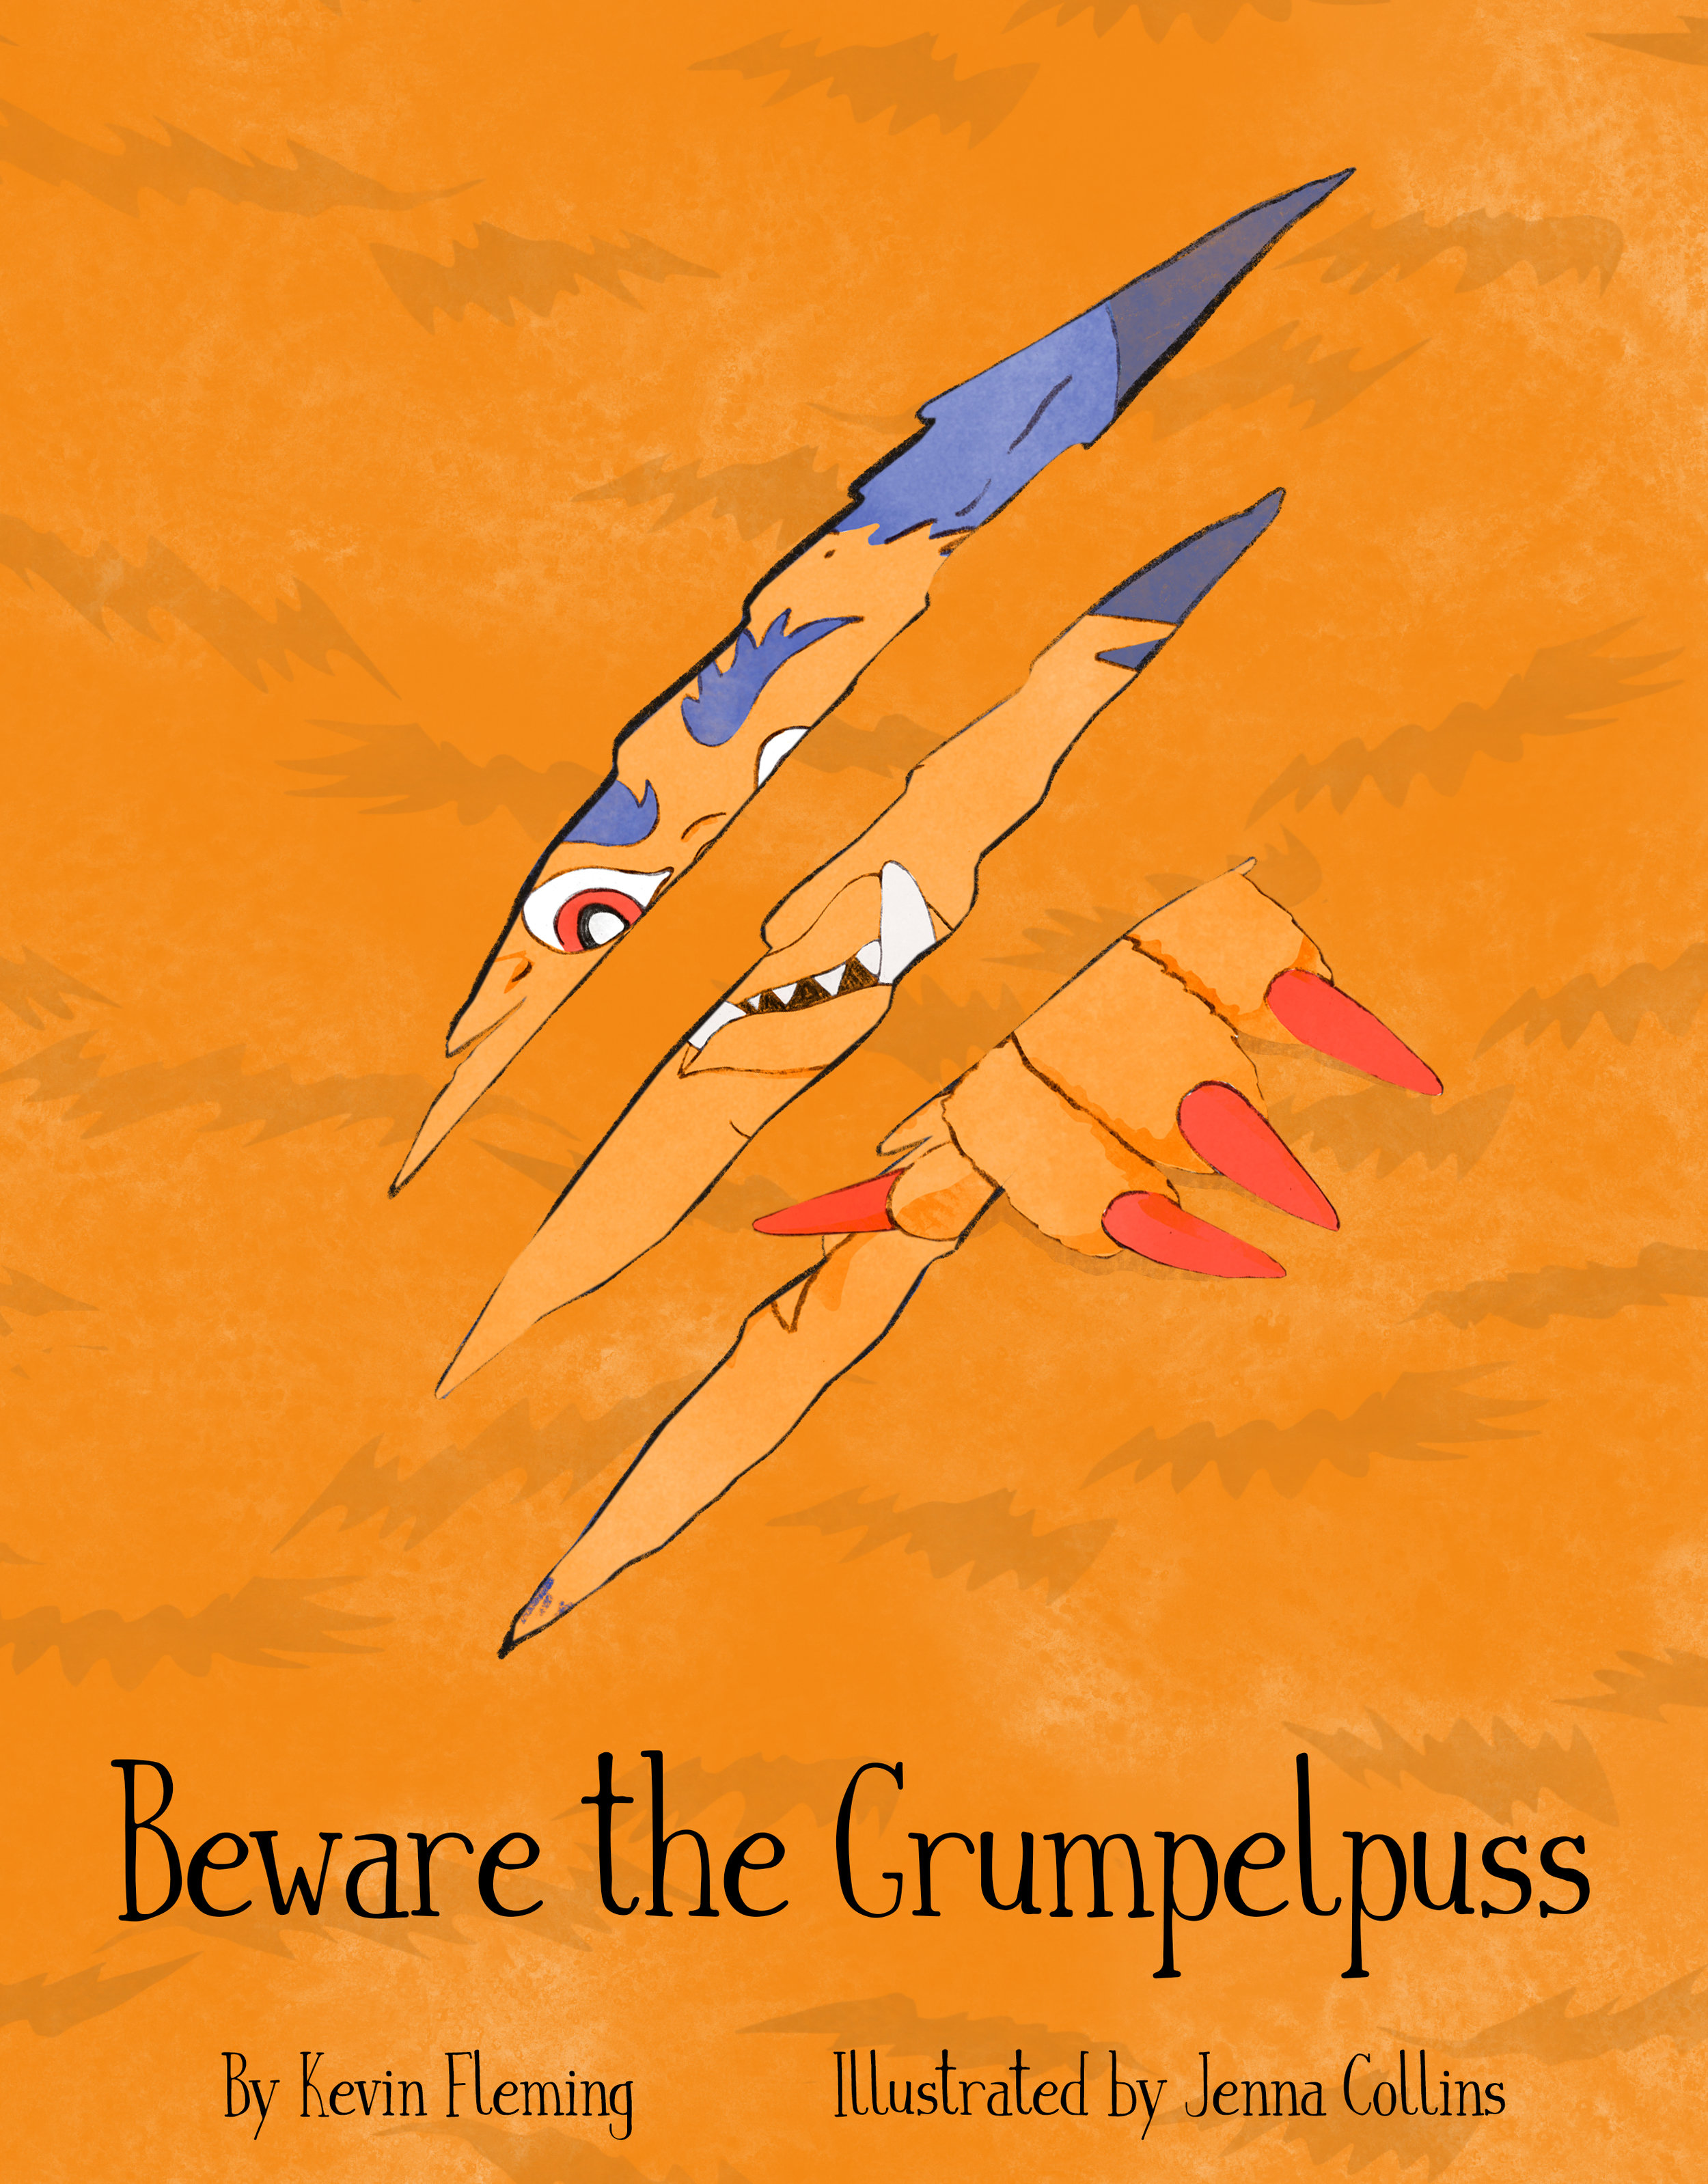 New Book Release! - Release Date: Friday, October 4th, 2019Beware the Grumpelpuss is the story of a boy who discovers the frightening and mythical beast, the Grumpelpuss, in a most unexpected place! In this beautifully illustrated tale of self-realization and personal heroism, comedic scenarios and rhyming verse take readers through a series of behavioral missteps that lead to the discovery of the feared creature. The methods of defeating the Grumpelpuss are revealed, and readers are offered the choice to heroically conquer their own personal Grumpelpuss as well:There's only one way to set a Grumpelpuss free: that's to unlock his cage, and YOU hold the key!